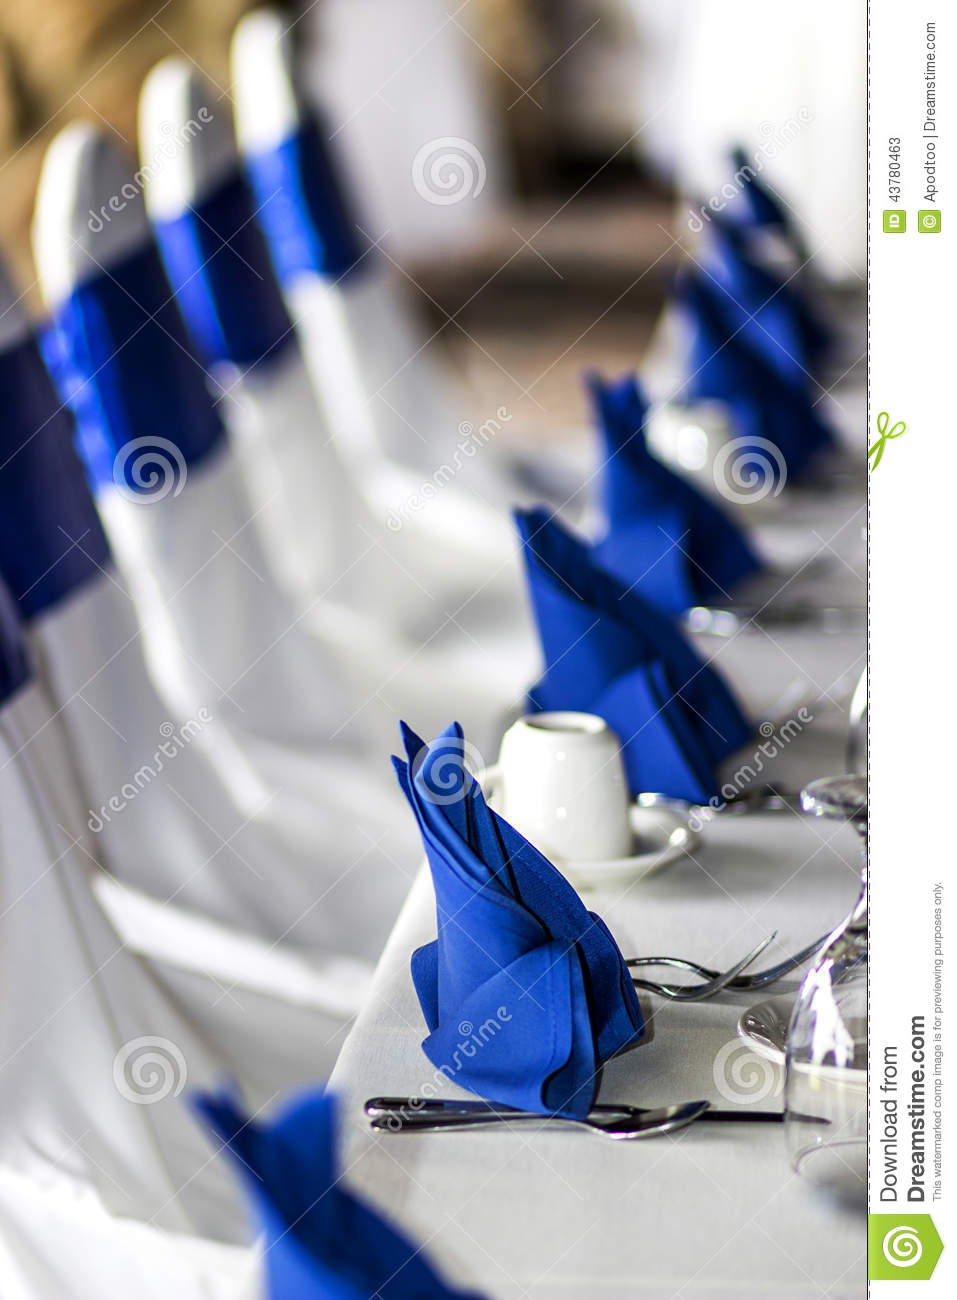 Stock Photo Event Banquet Table Napkins Chair Covers Place Settings Wedding Reception Brunch Royal Blue Line White Image43780463 on banquet chairs for less